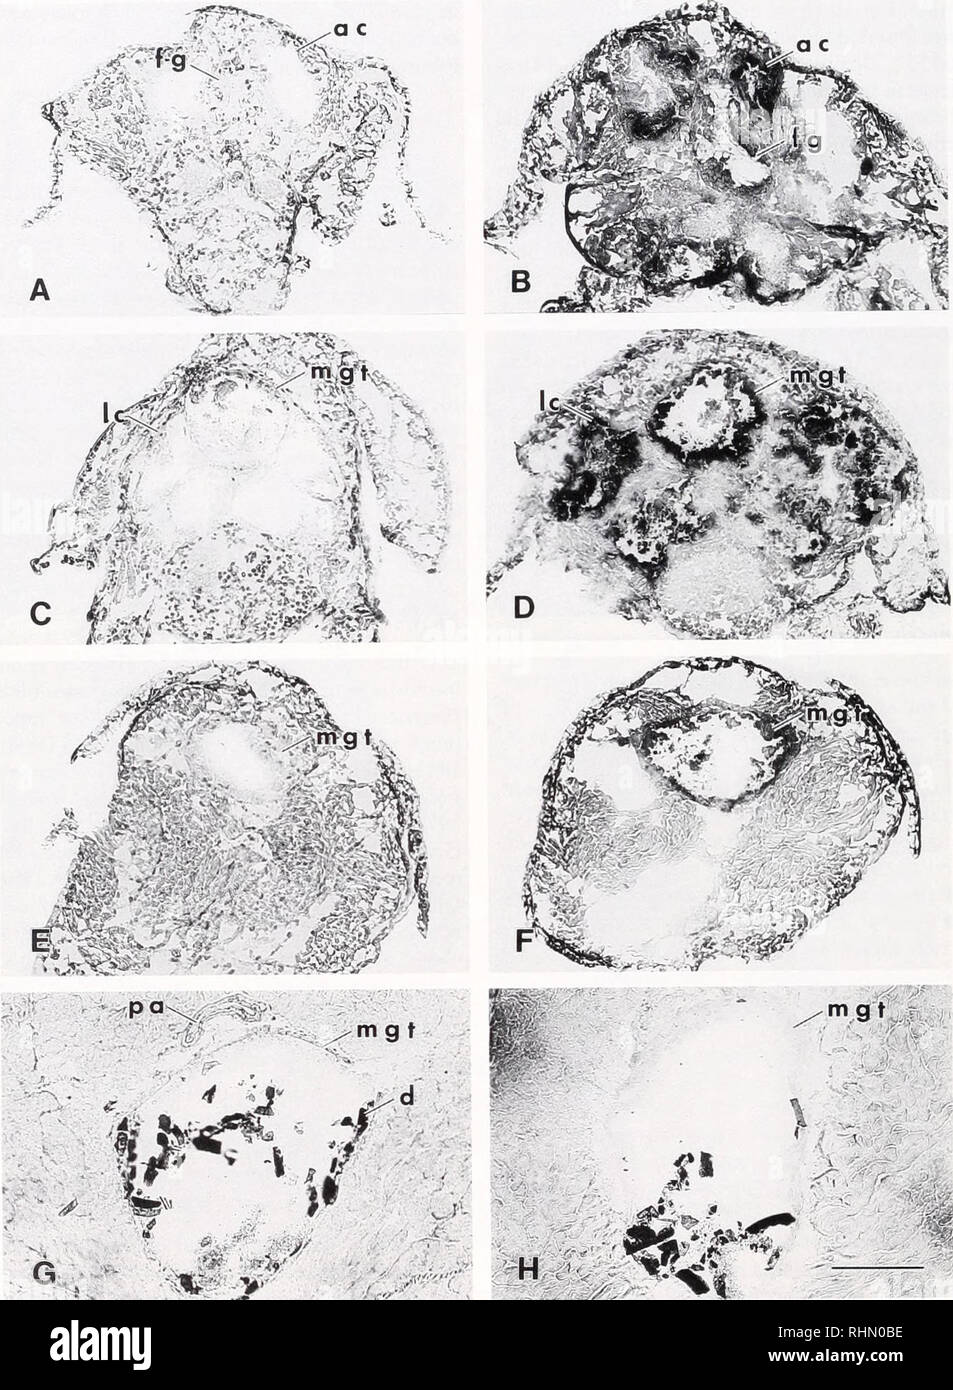 . The Biological bulletin. Biology; Zoology; Biology; Marine Biology. 166 D. L. LOVETT AND D. L. FELDER ' -* mgt ,. ^_. G • T' W *;*•> ^v :Jr' *>£*>'•' Figure 3. Histochemical localization of alkaline phosphatase activity in fresh frozen sections of Penaeus setifenis. A, C, E, G, control sections. B, D, F, H. sections incubated with Naphthol AS-BI phos- phate as substrate. A, B, transverse section through foregut and anterior midgut caeca of larval stage Mysis 2. C, D. transverse section through lateral midgut caeca and midgut trunk of Mysis 2. E. F, transverse section through abdomin - Stock Image